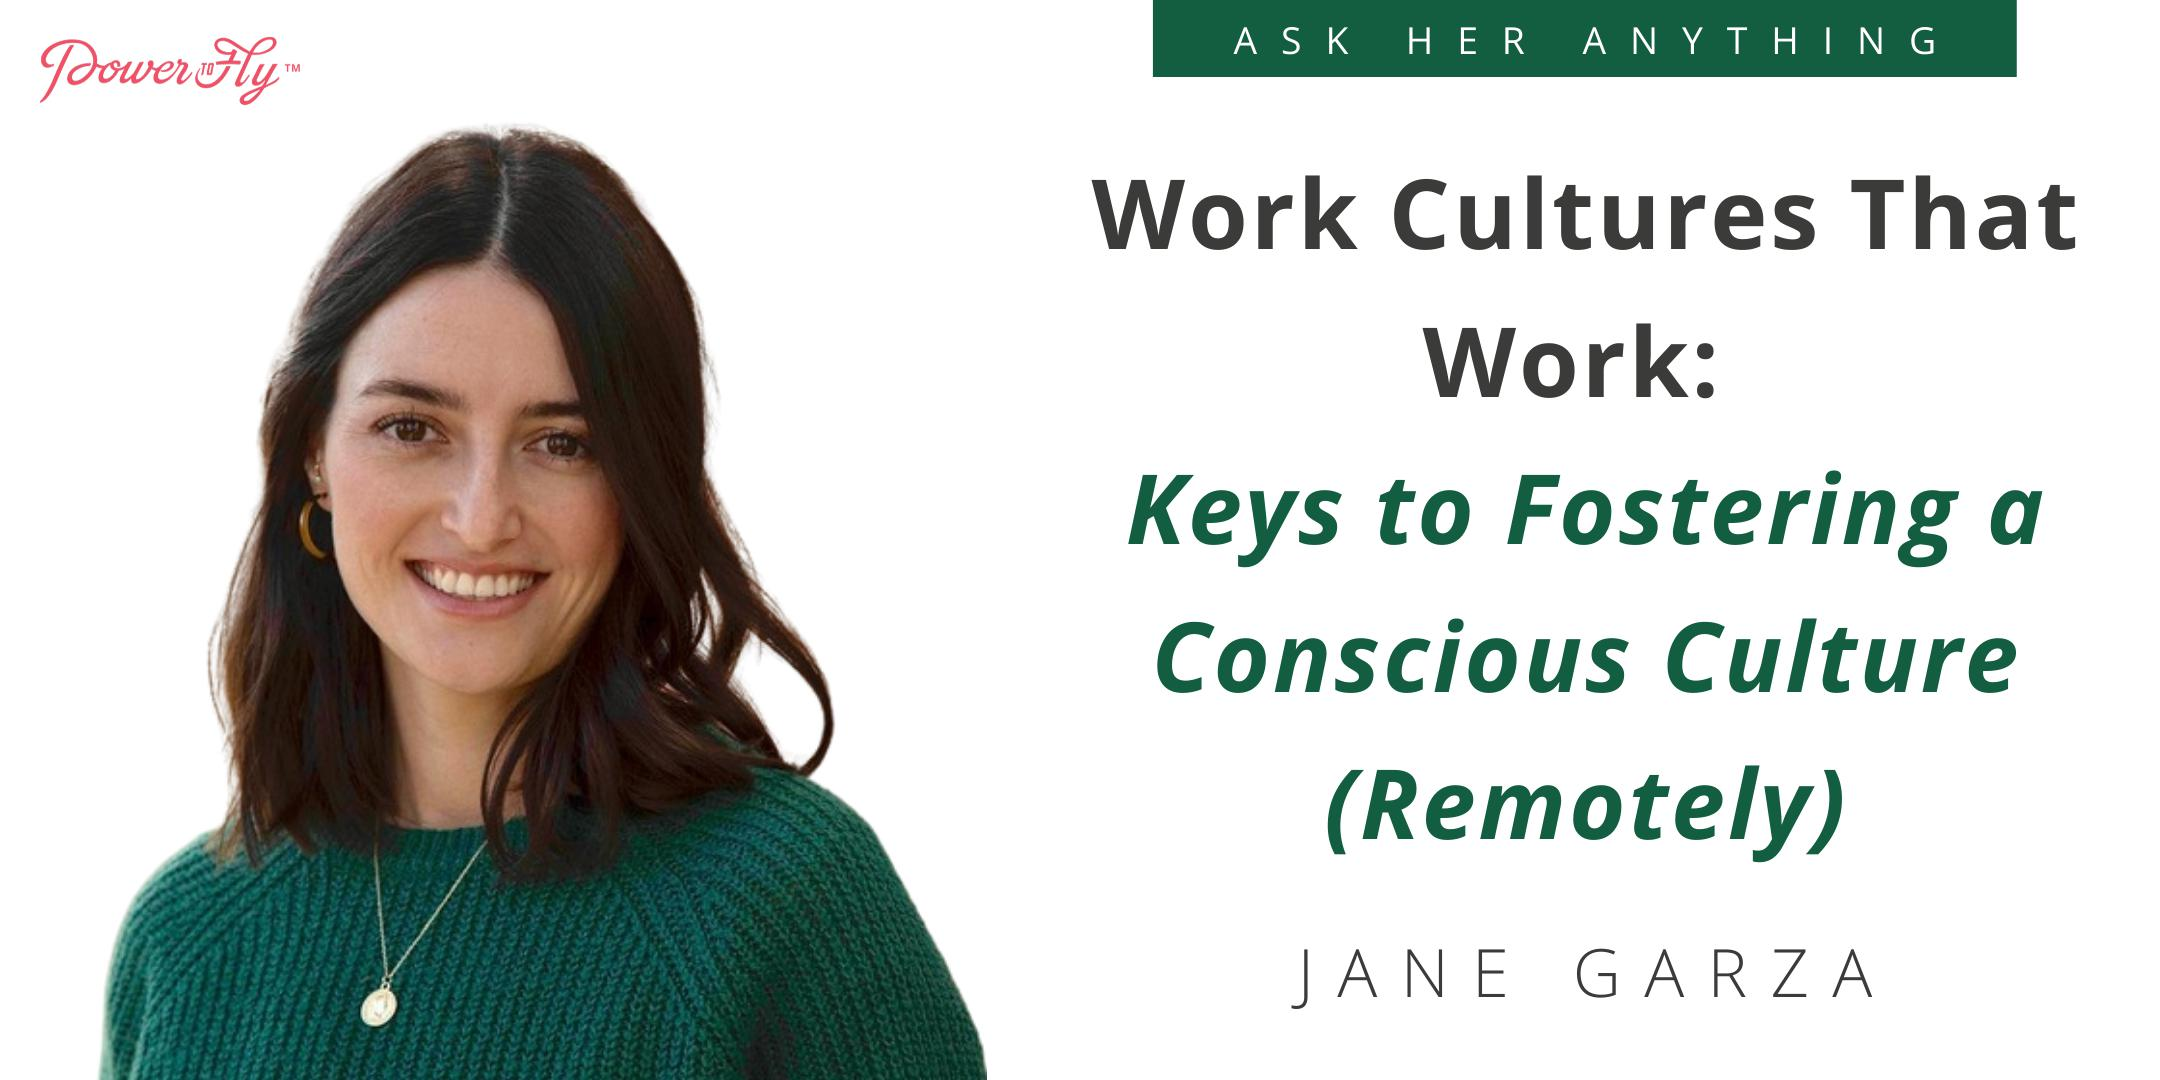 Work Cultures That Work: Keys to Fostering a Conscious Culture (Remotely)